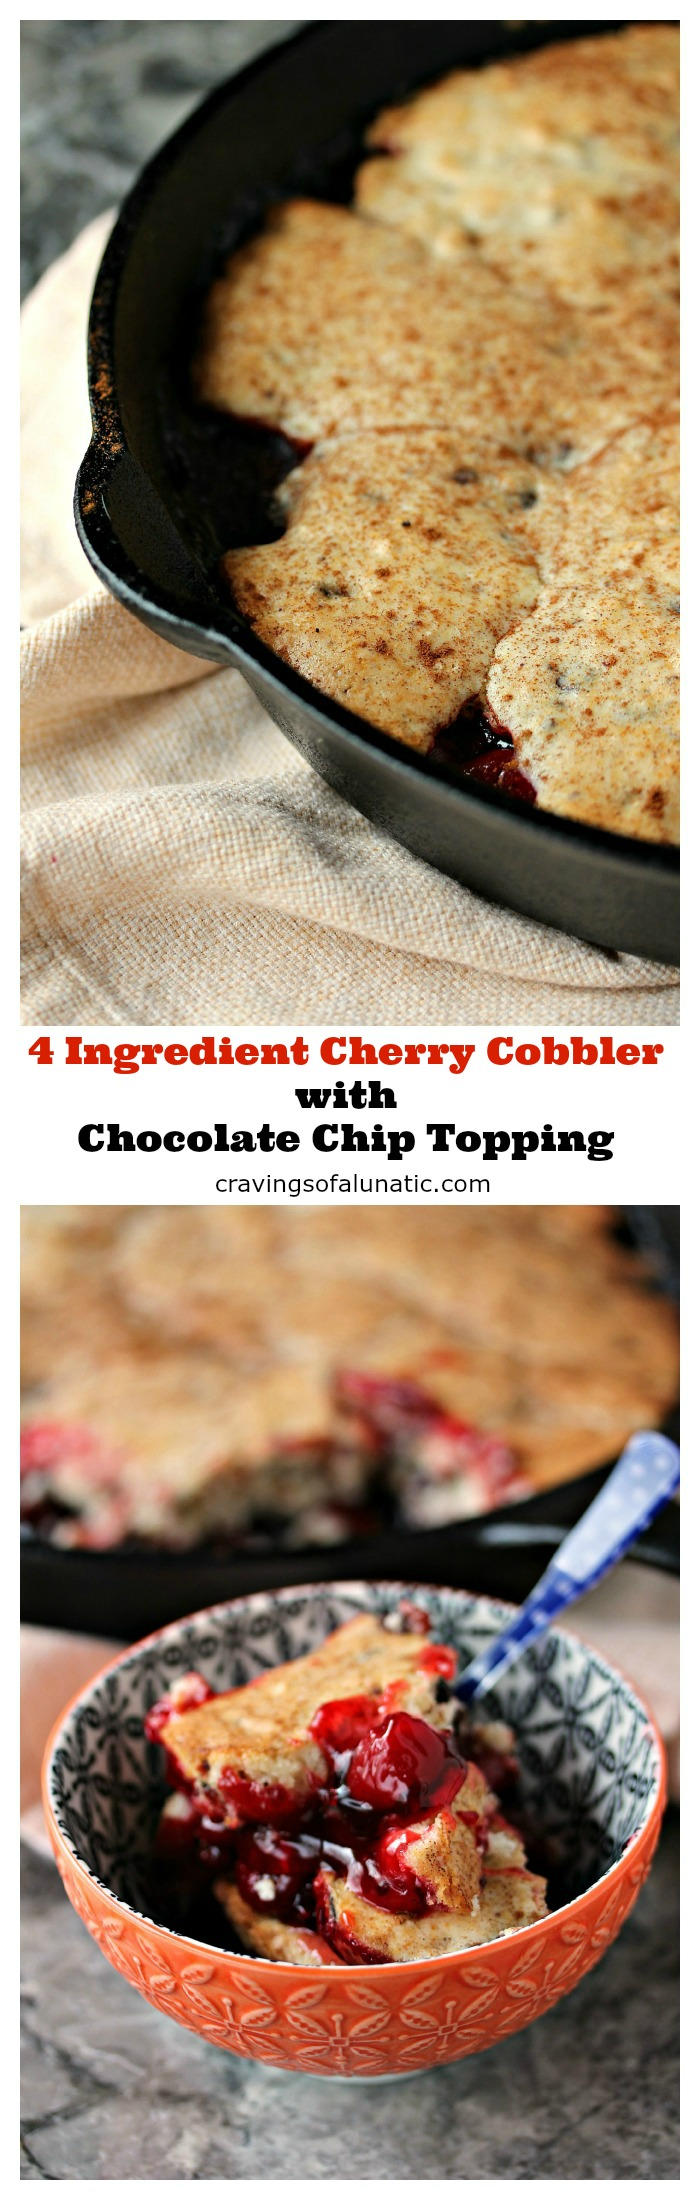 Cherry Cobbler from cravingsofalunatic.com- This cherry cobbler recipe is easy, quick and utterly delicious. It's topped with chocolate chip muffin mix for everyone who loves cherries with chocolate as much as I do! (@CravingsLunatic)